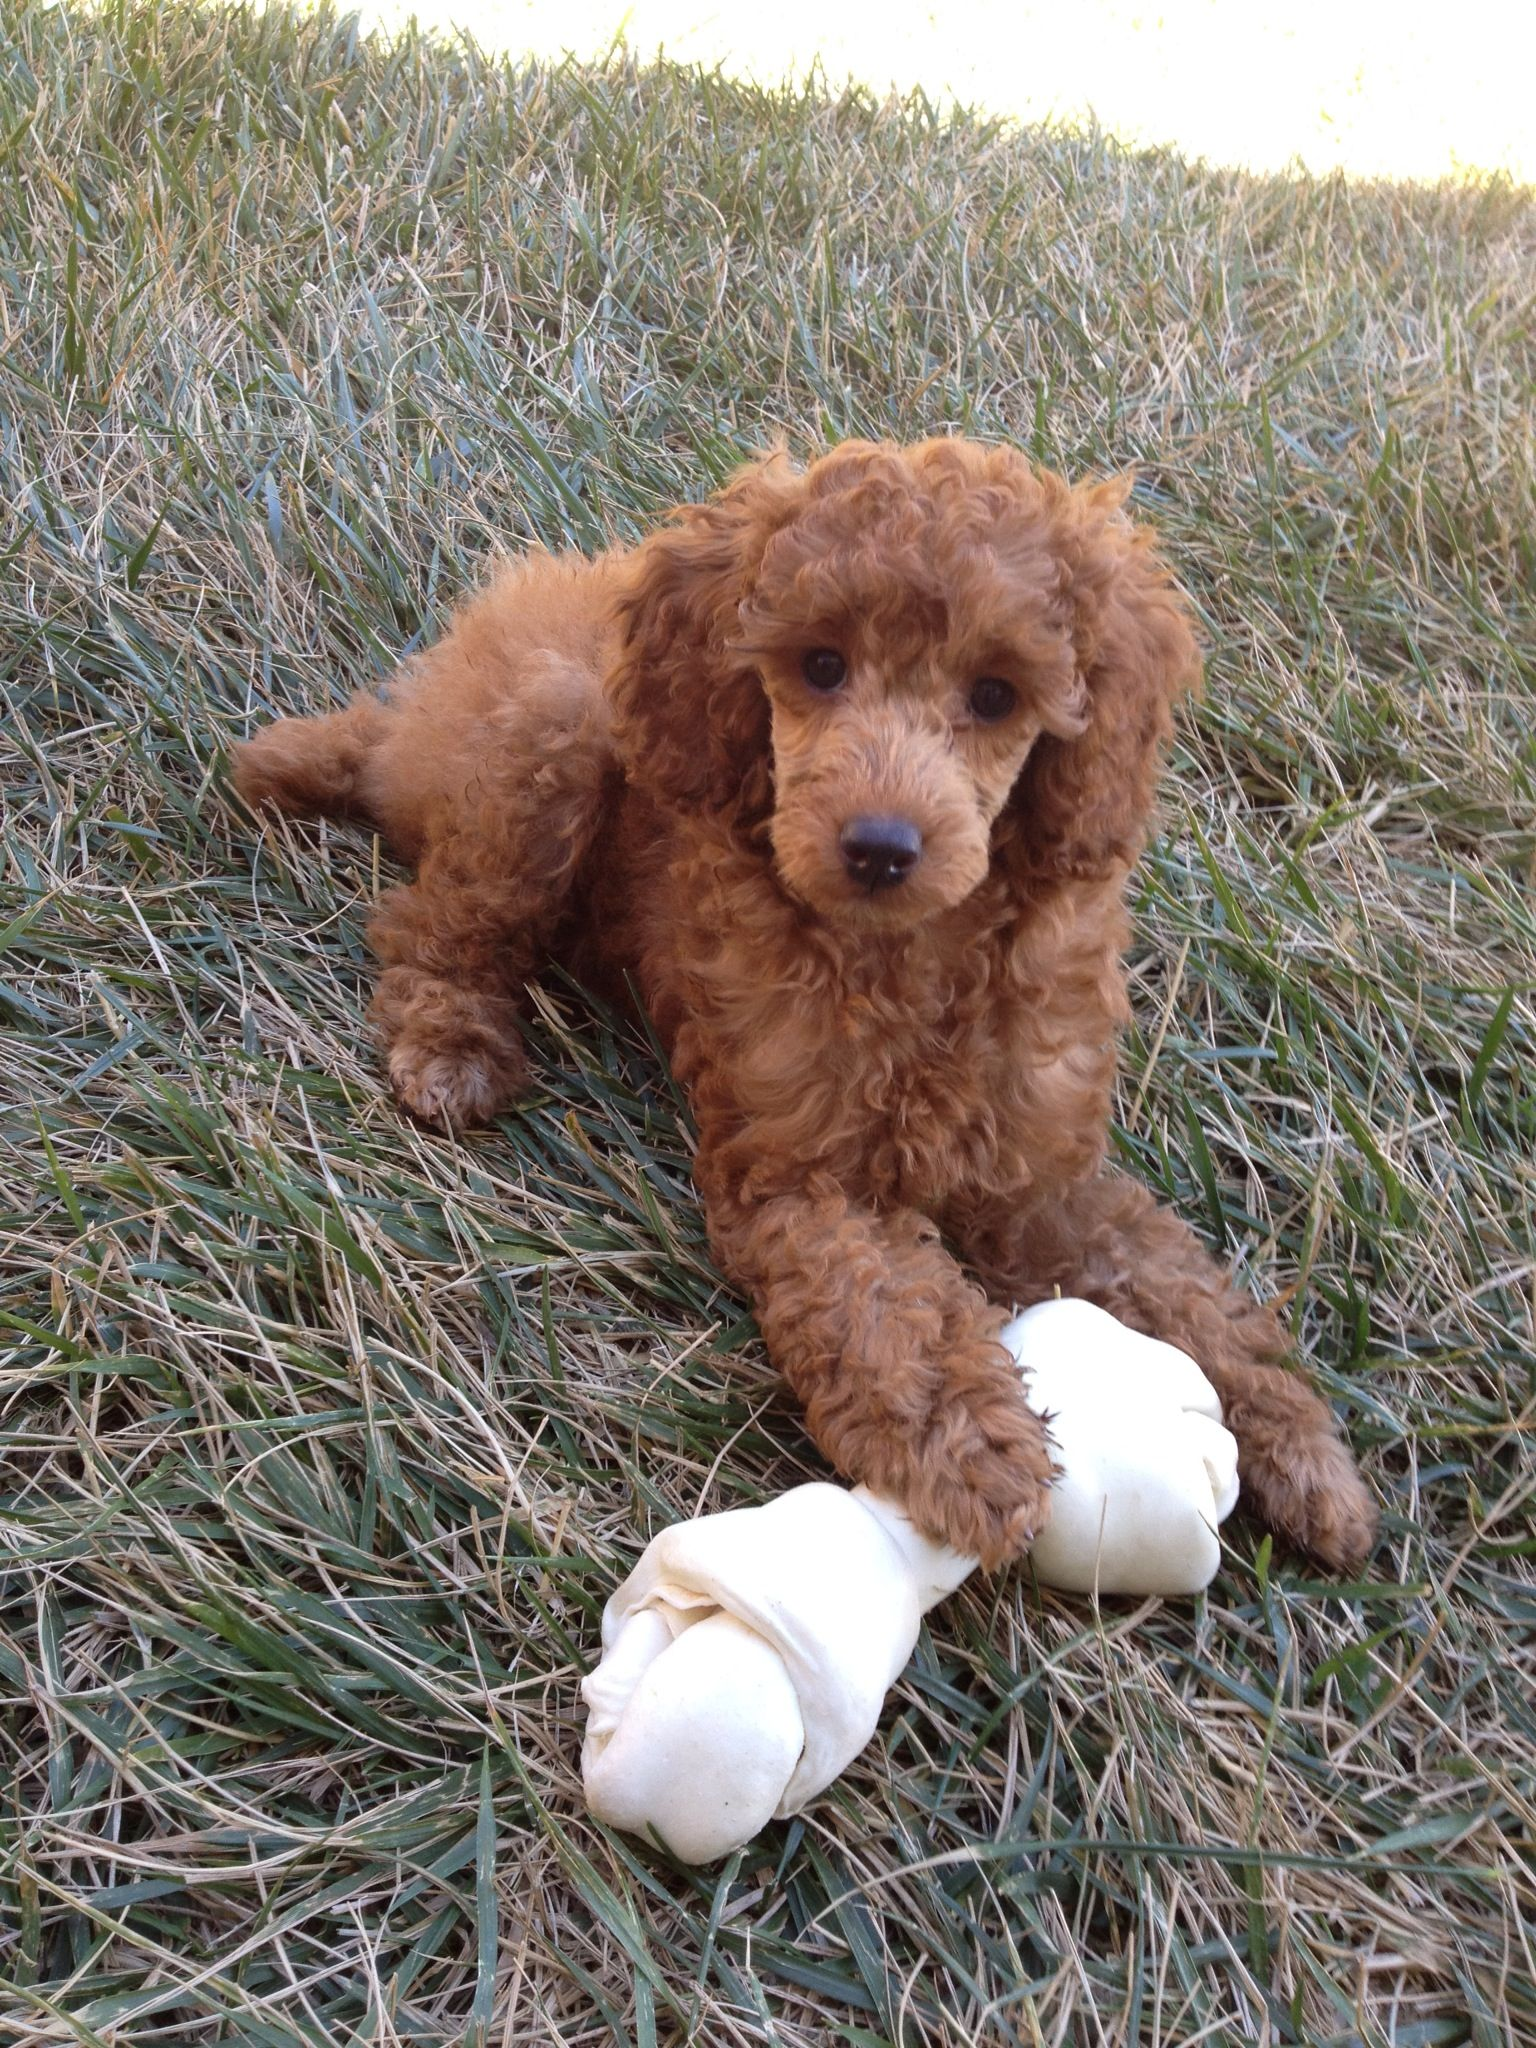 Red Miniature Poodle Puppy 12 Weeks Old Such A Sweetie Poodle